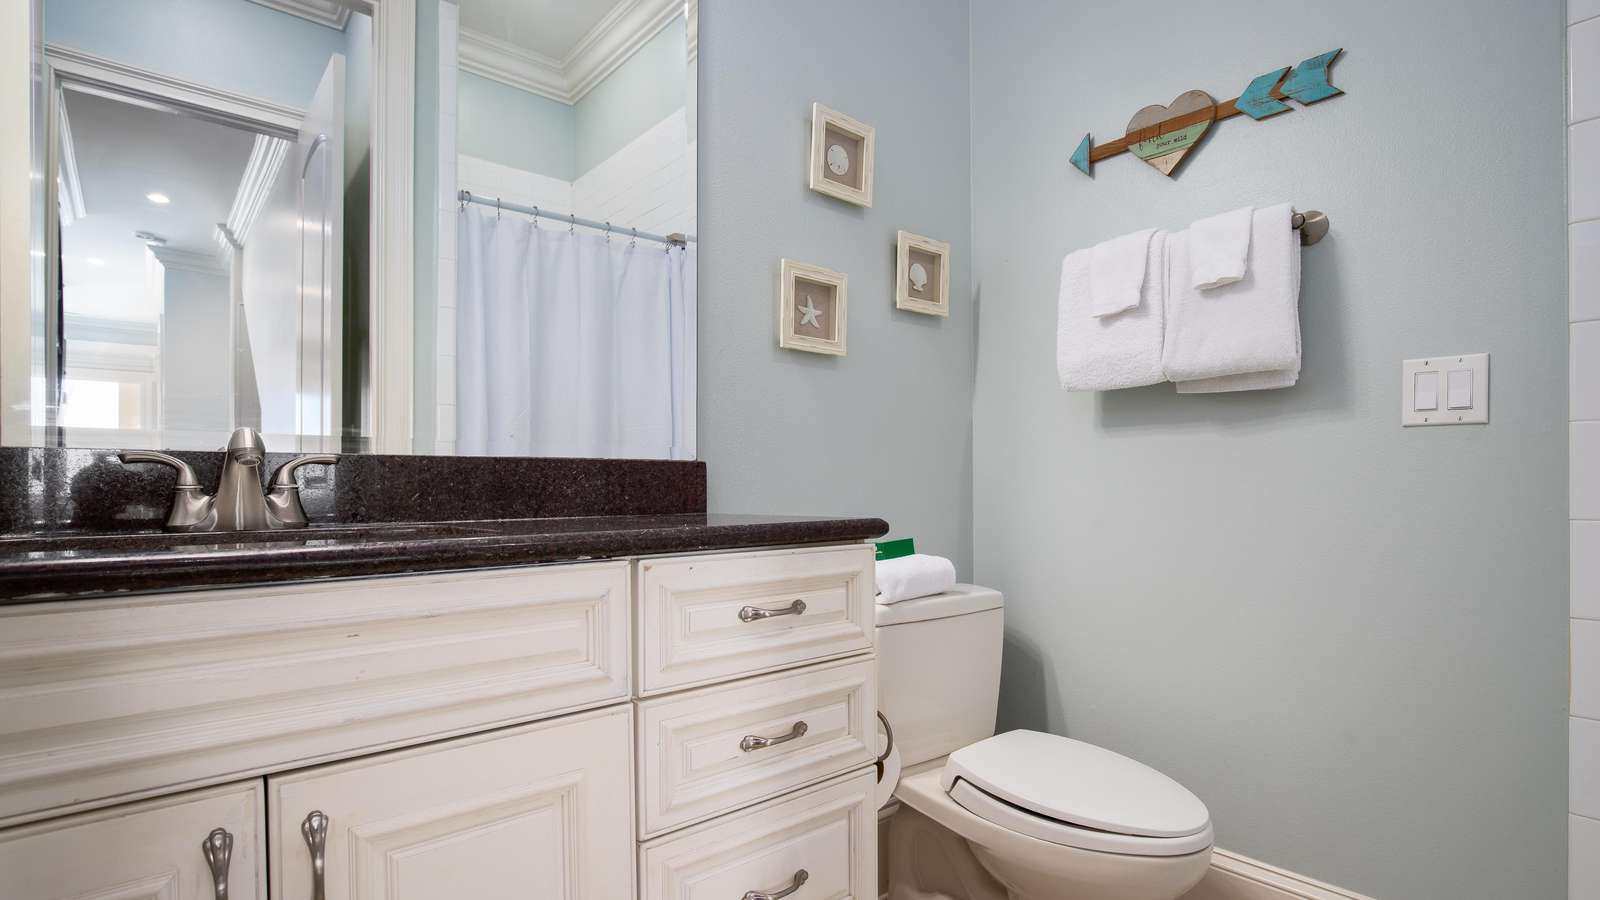 The full bathroom for the 3rd bedroom